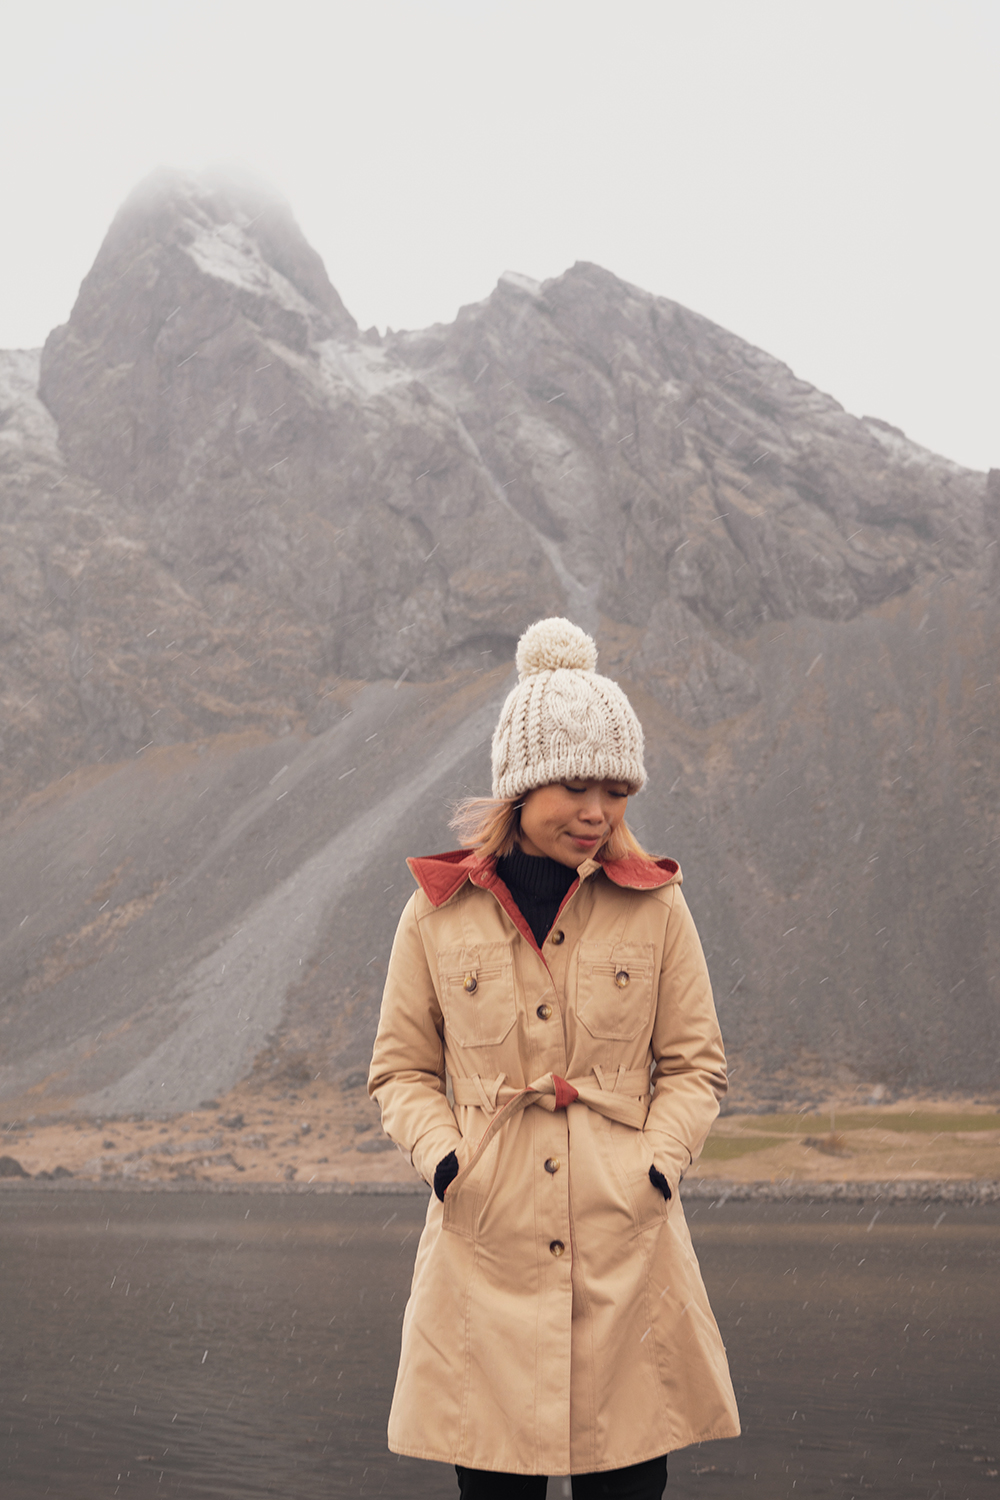 02iceland-hvalnes-hornymountains-travel-style-ootd